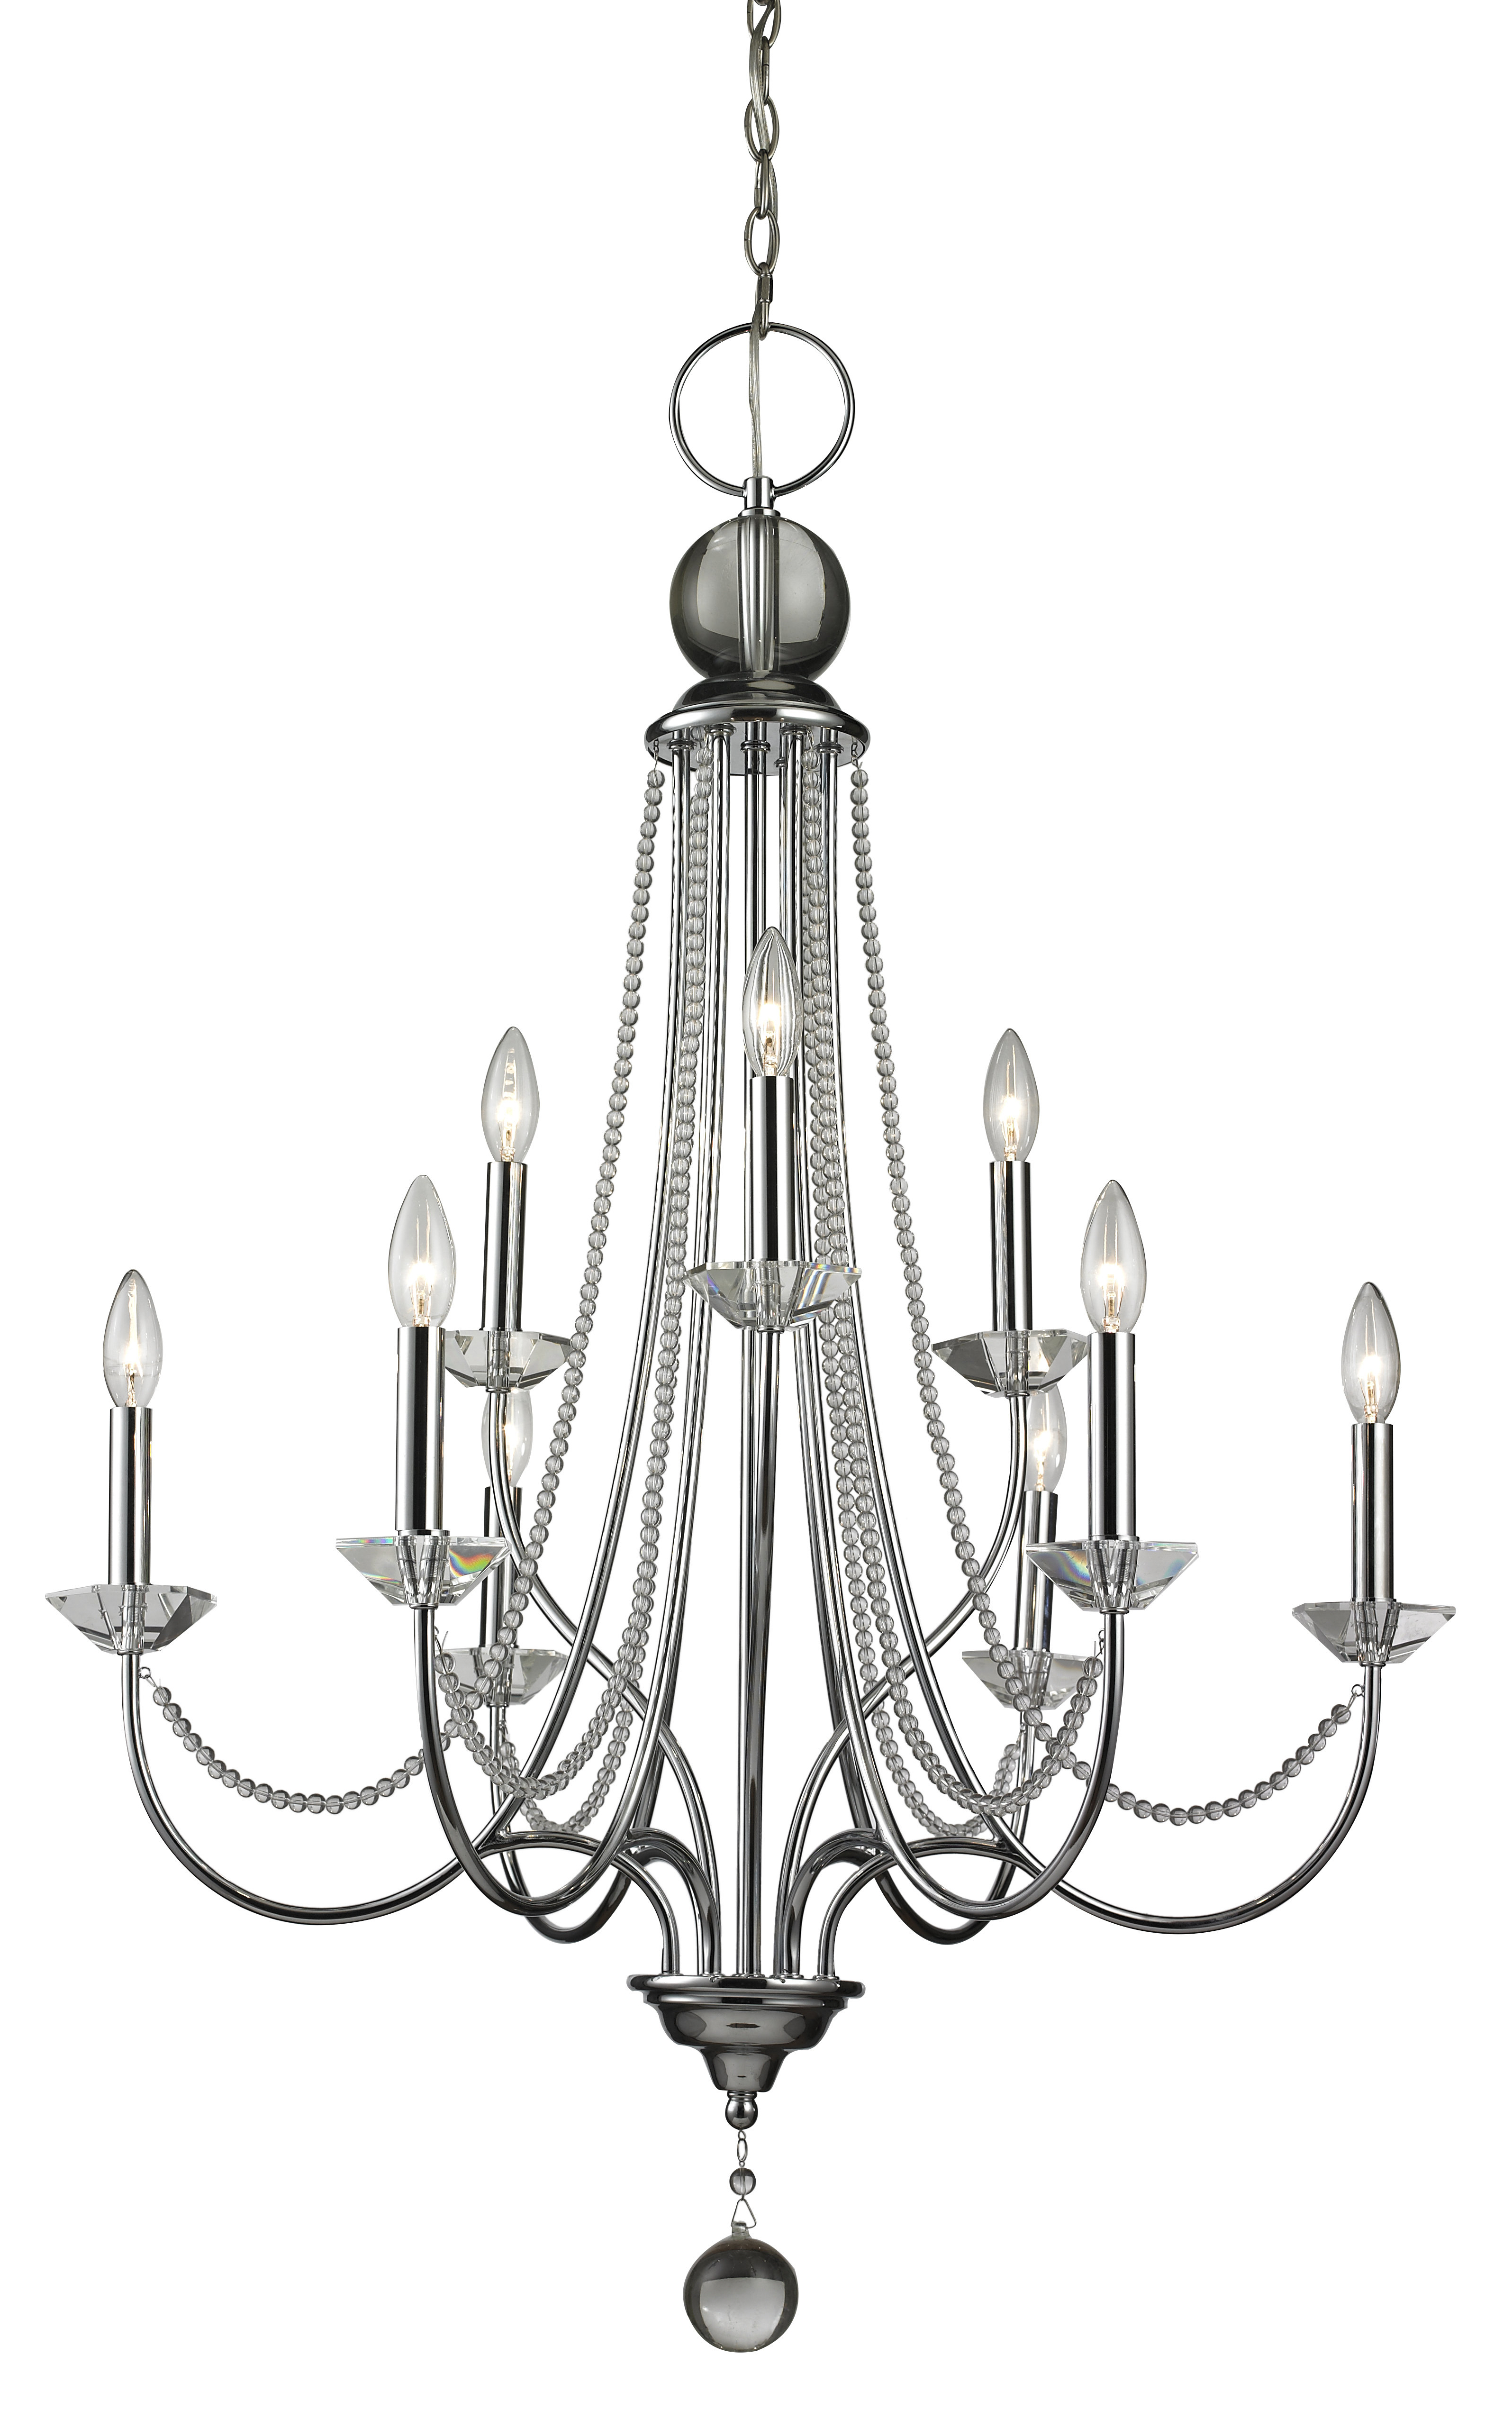 Patrice 9 Light Candle Style Chandelier For Most Recently Released Gaines 9 Light Candle Style Chandeliers (View 16 of 25)